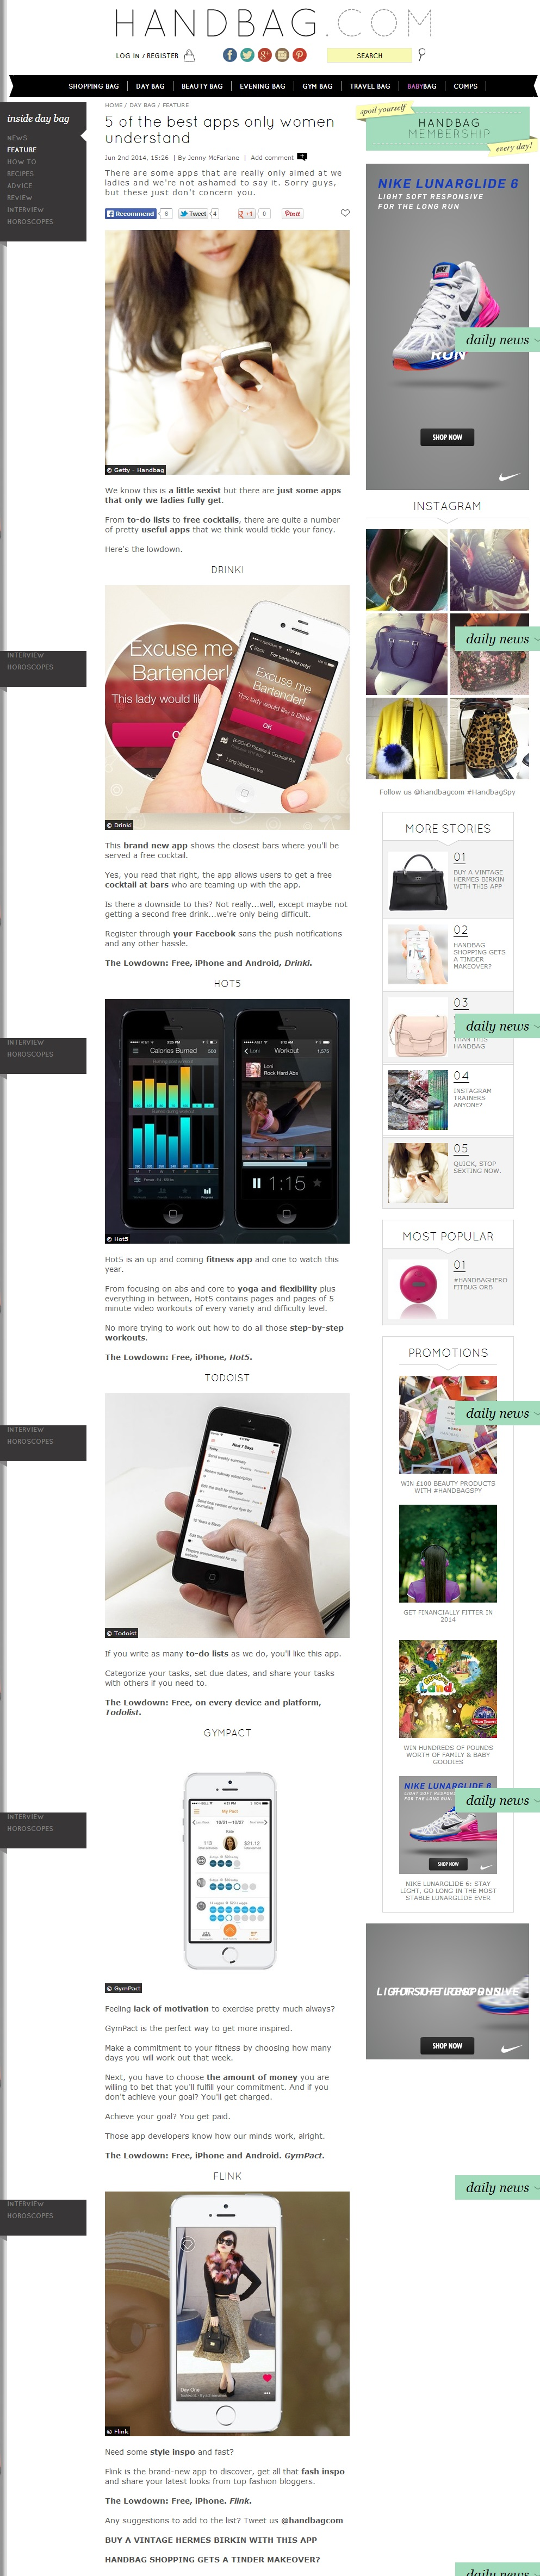 screencapture-www-handbag-com-day-bag-feature-a574020-5-of-the-best-apps-only-women-understand-html